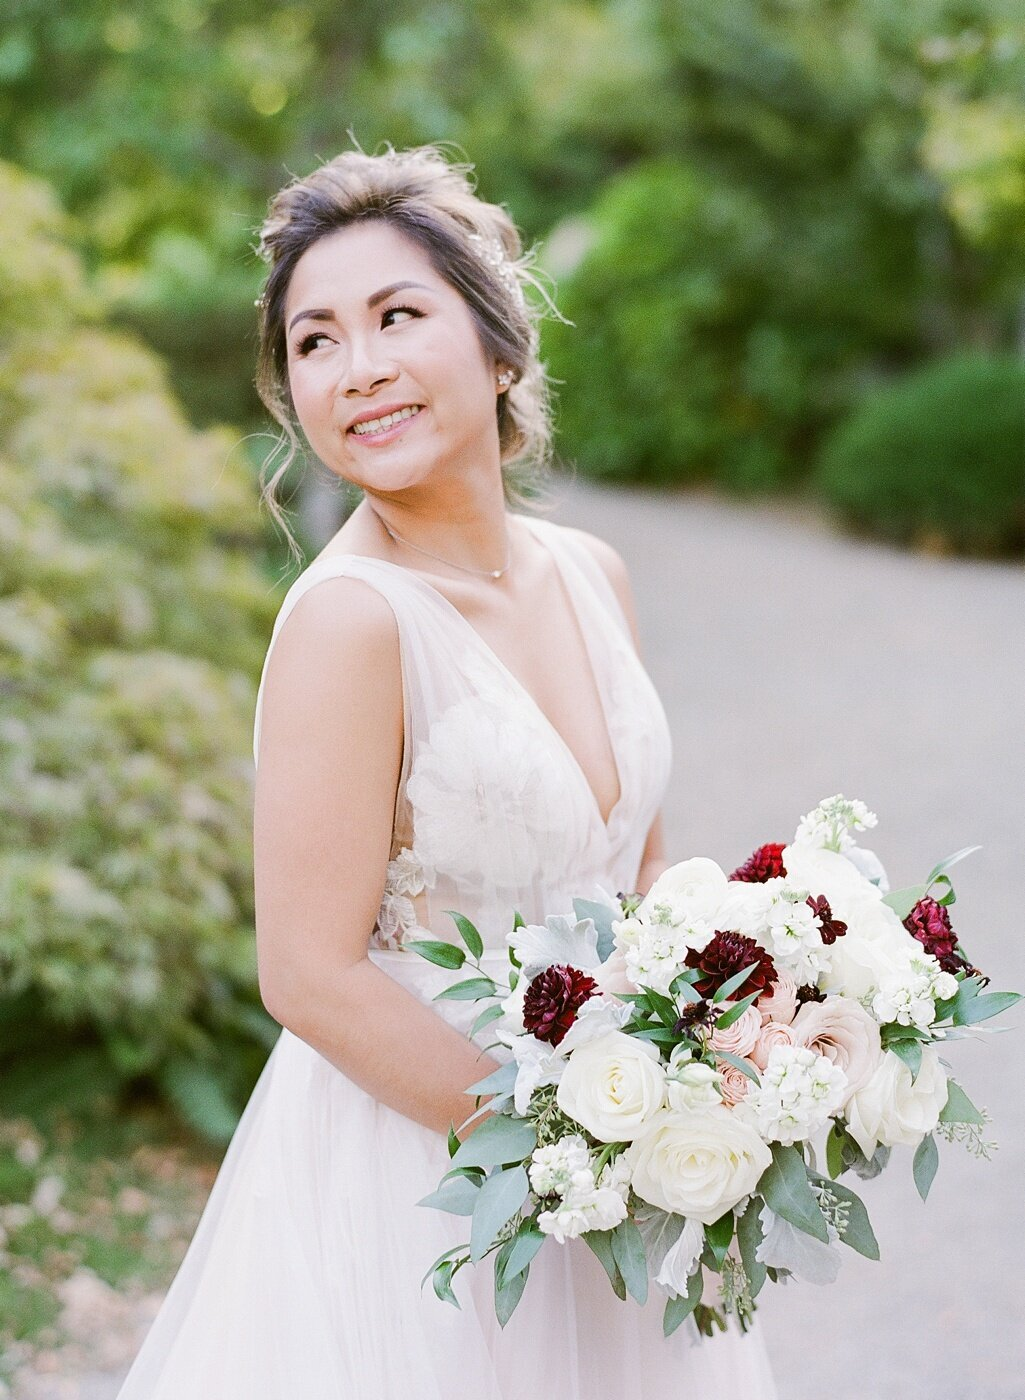 Jessie-Barksdale-Photography_Hakone-Gardens-Saratoga_San-Francisco-Bay-Area-Wedding-Photographer_0088